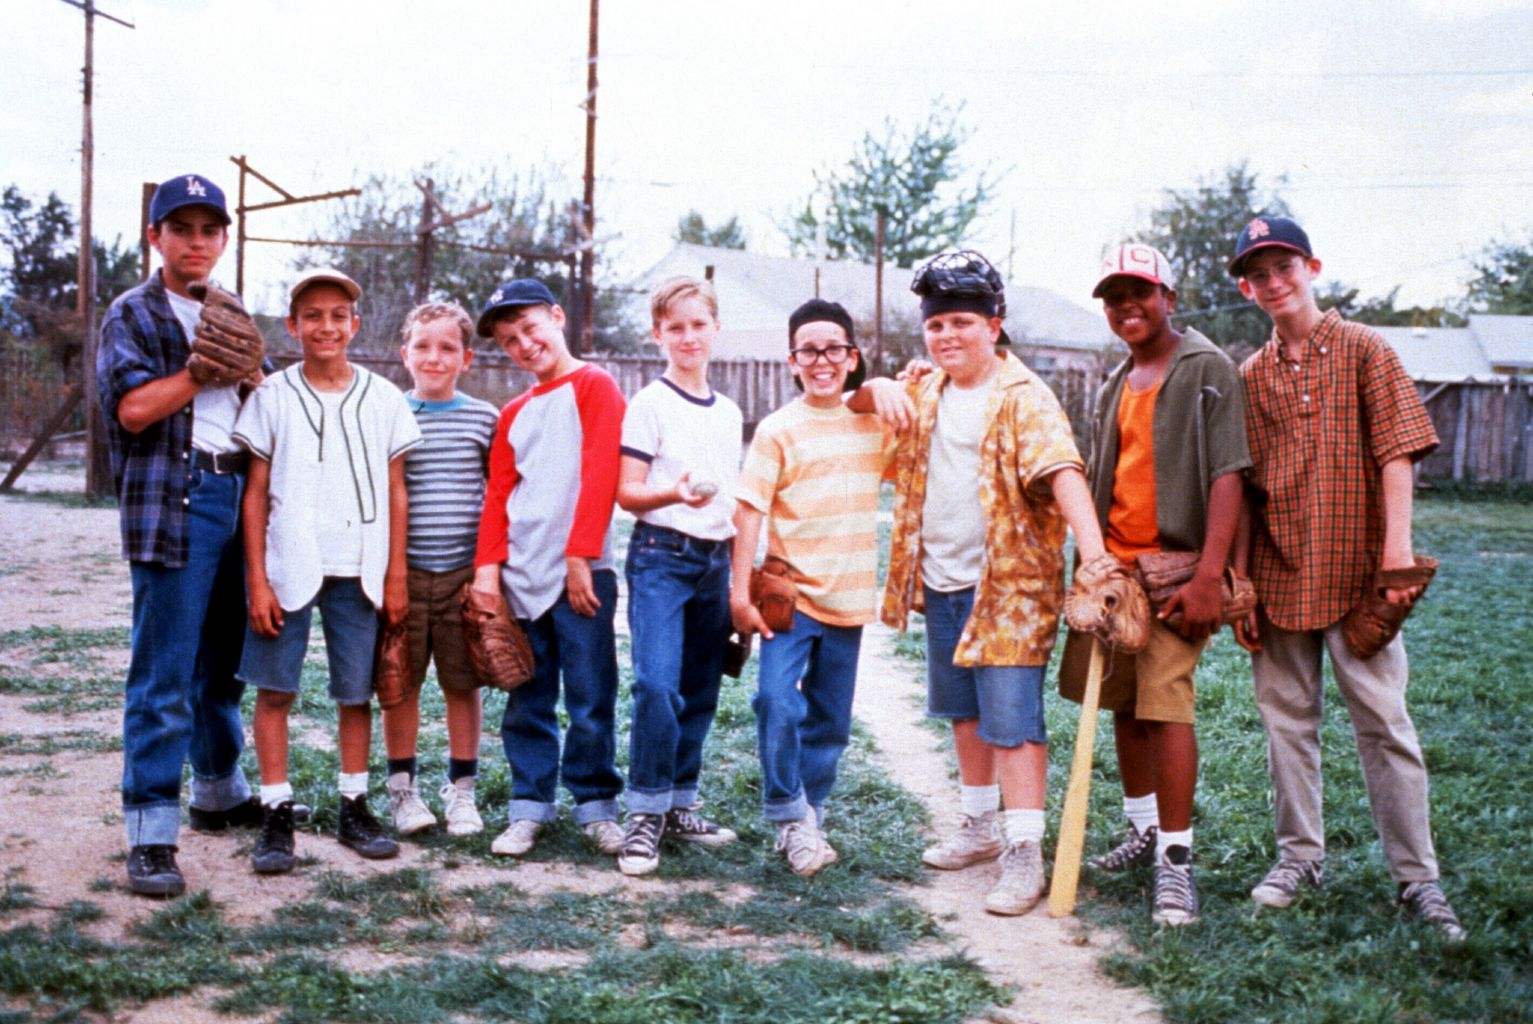 The Sandlot Full Movie